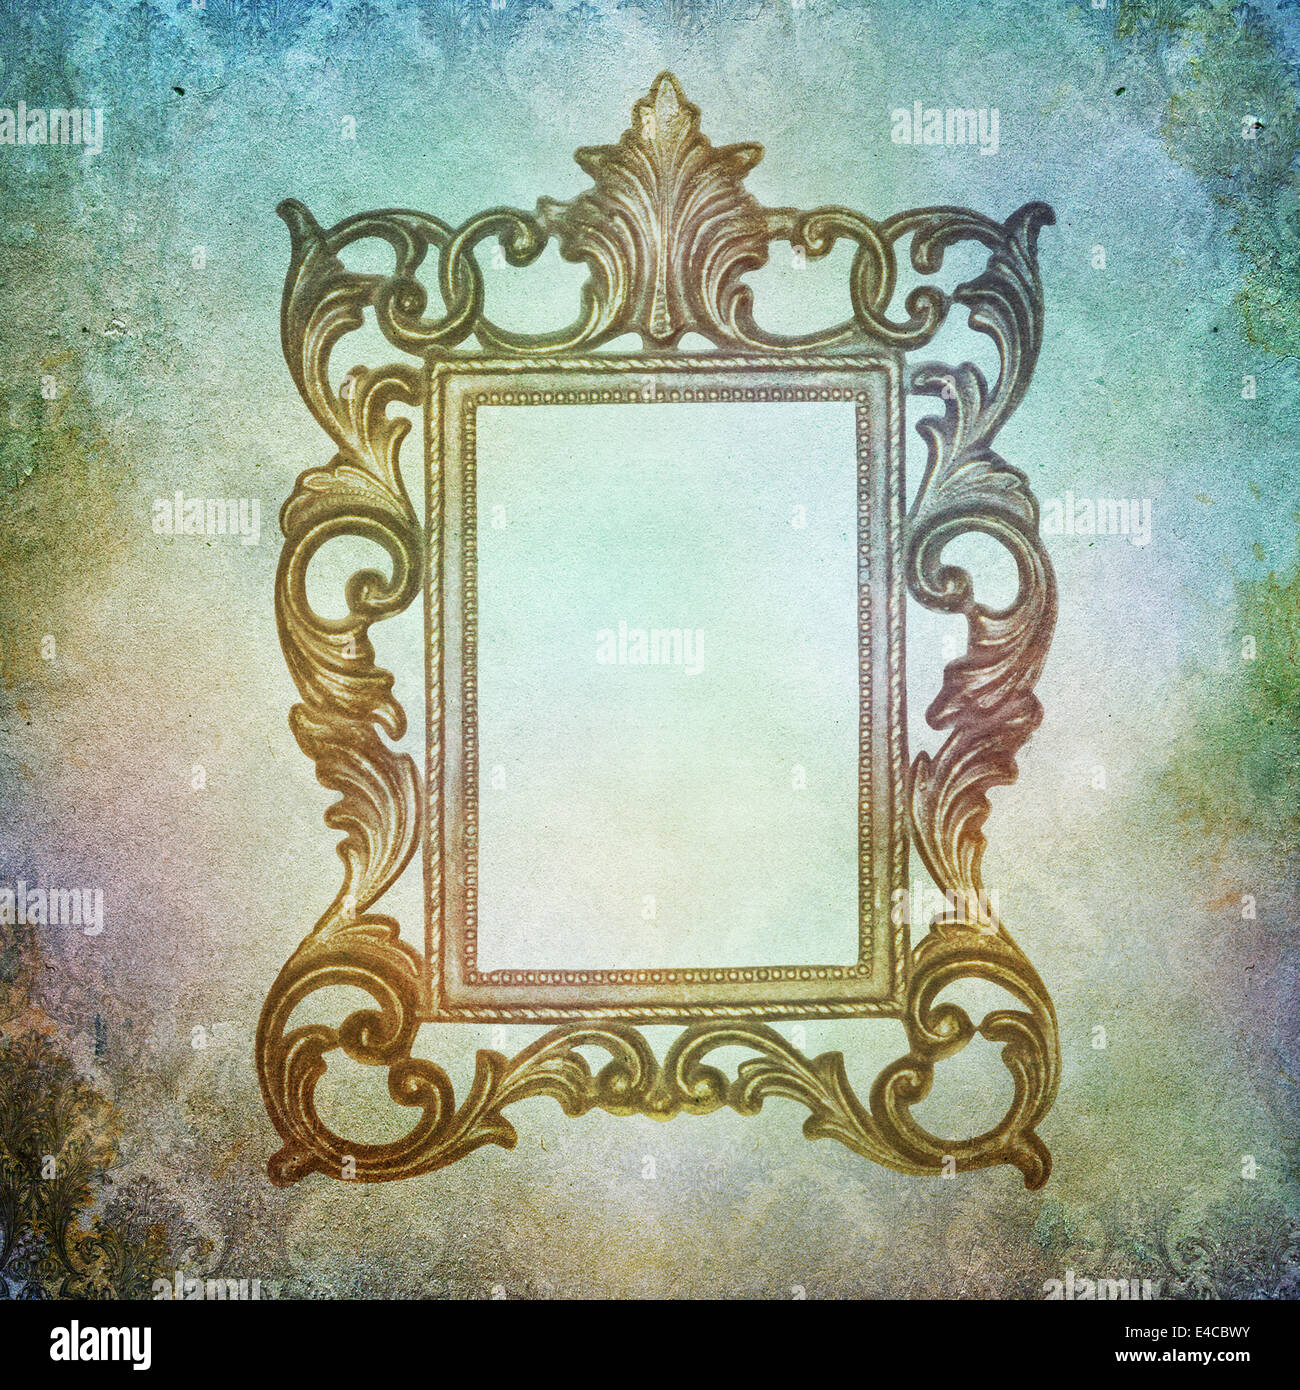 Vintage Shabby Chic Background With Frame Stock Photo 71572871 Alamy